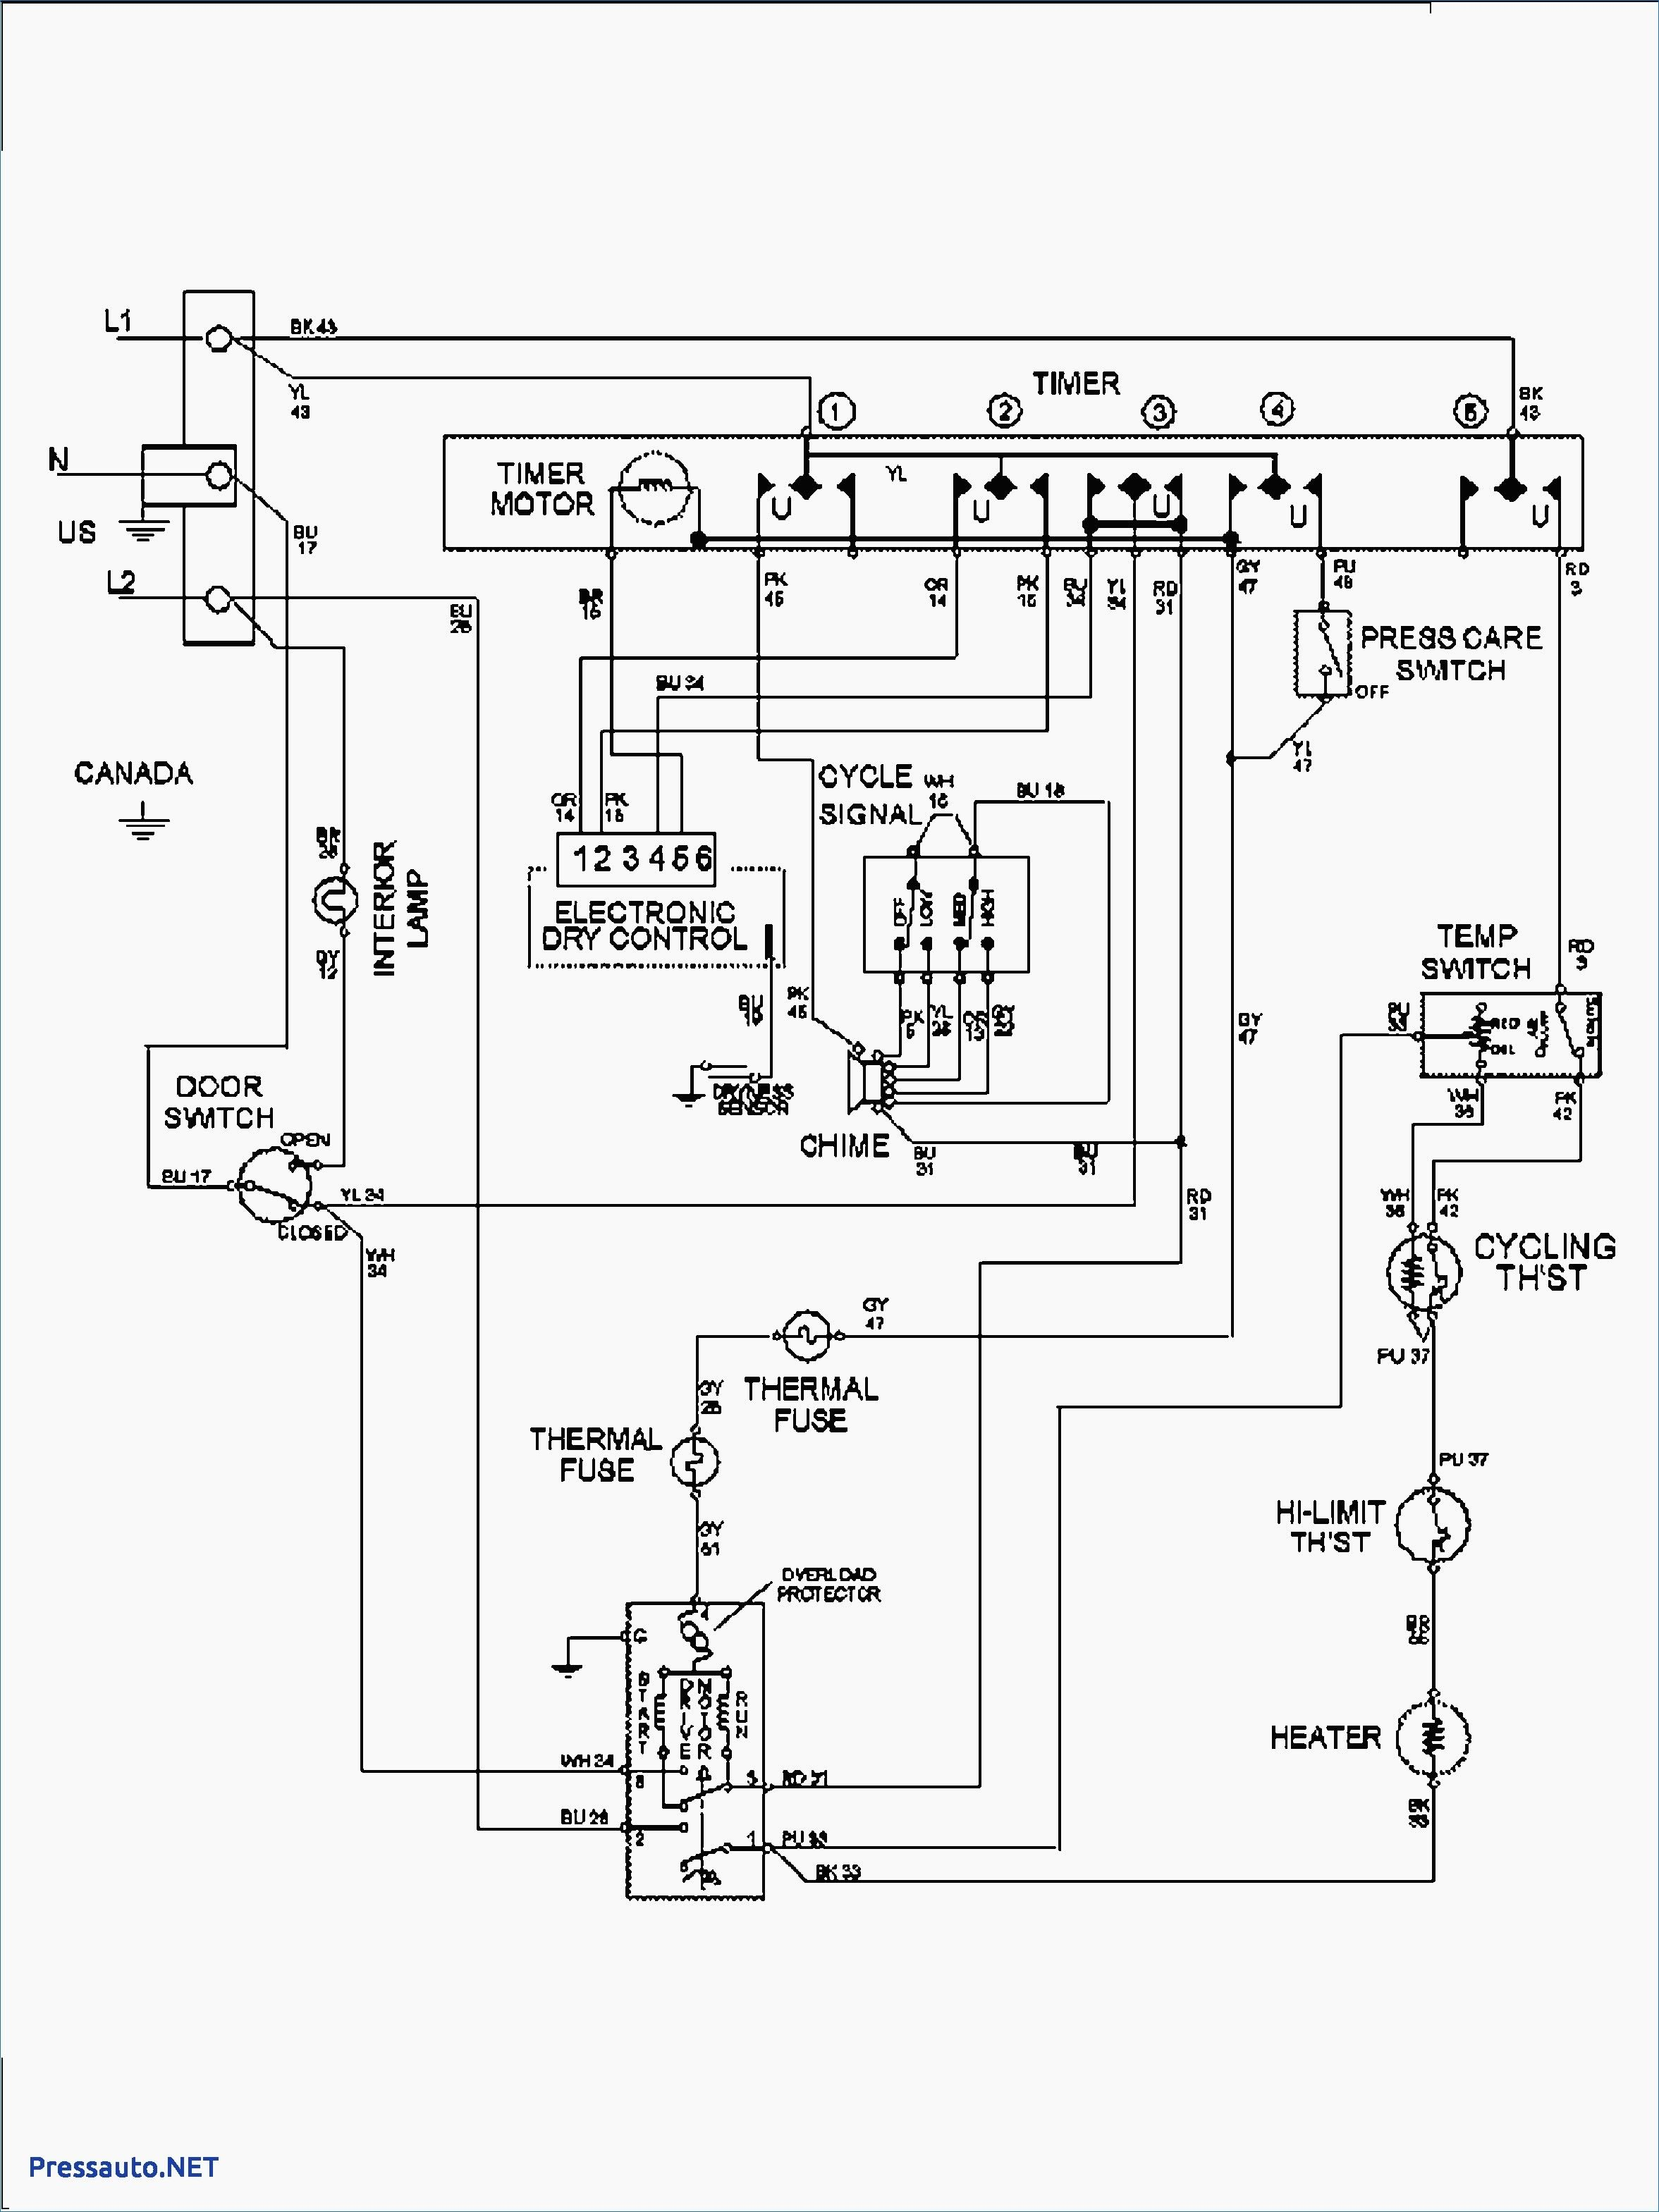 Wiring Diagram Of Washing Machine Http Bookingritzcarlton Info Wiring Diagram Of Washing Maytag Dryer Electric Dryers Whirlpool Dryer